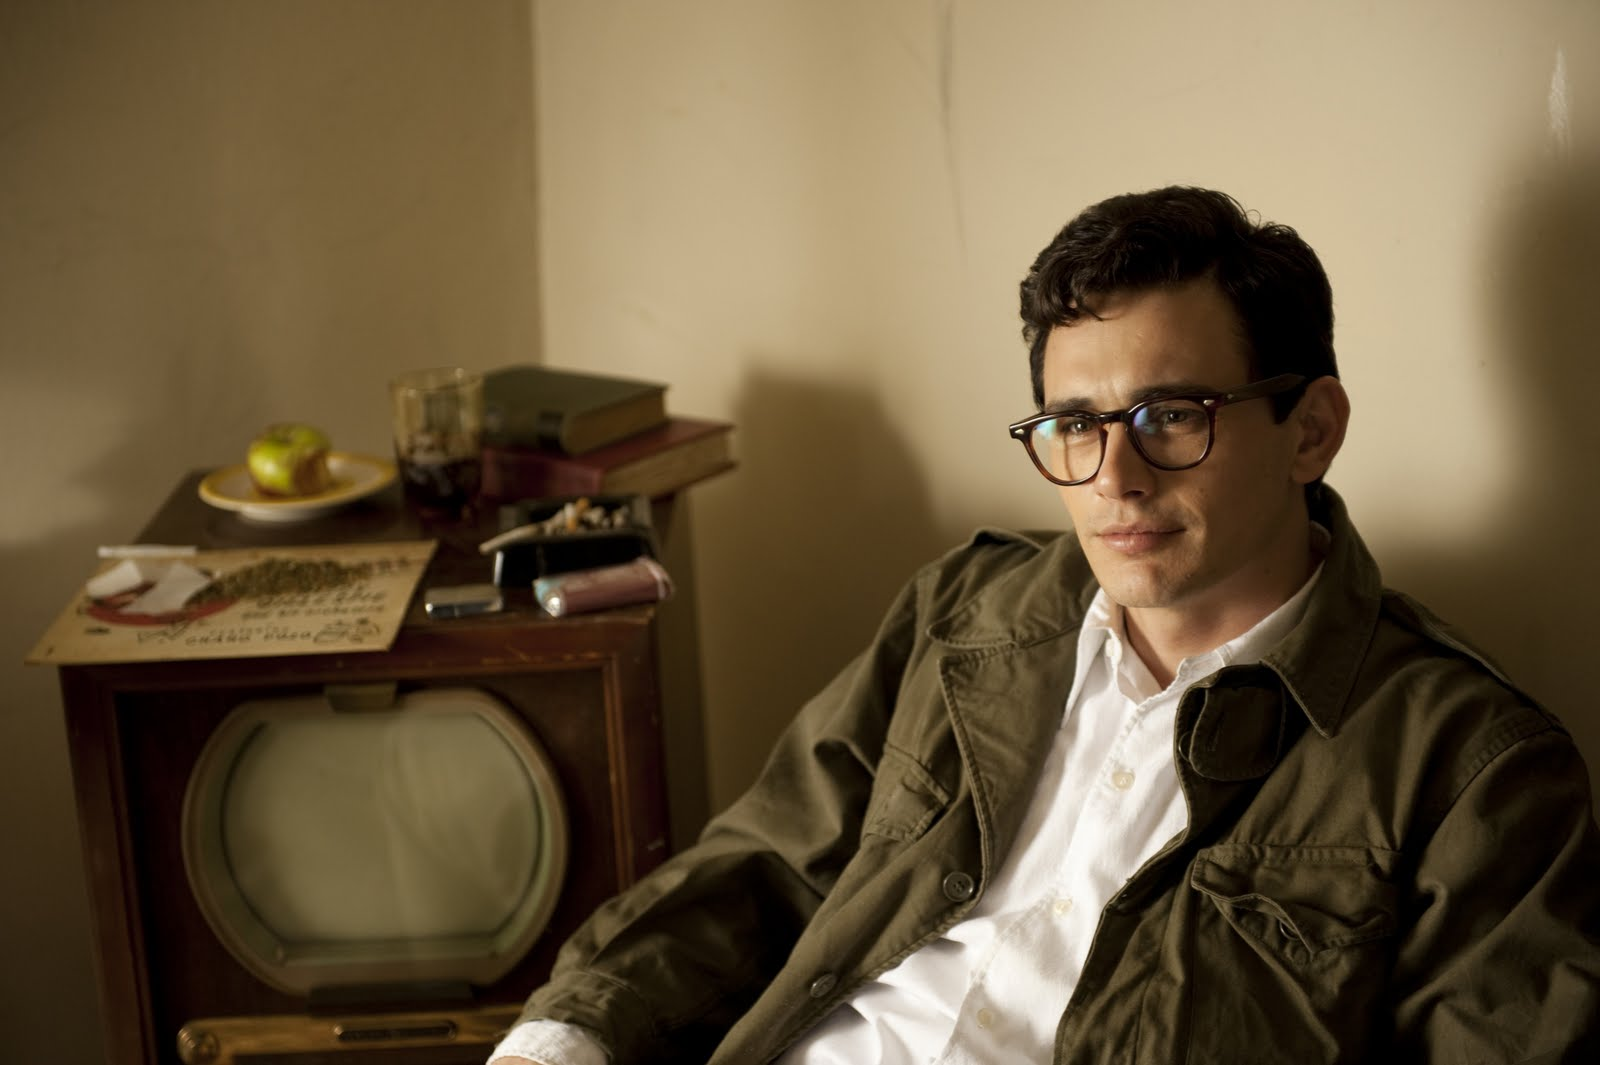 Dvd review james franco in howl marc andrews aka marc e marc dvd review james franco in howl nvjuhfo Choice Image